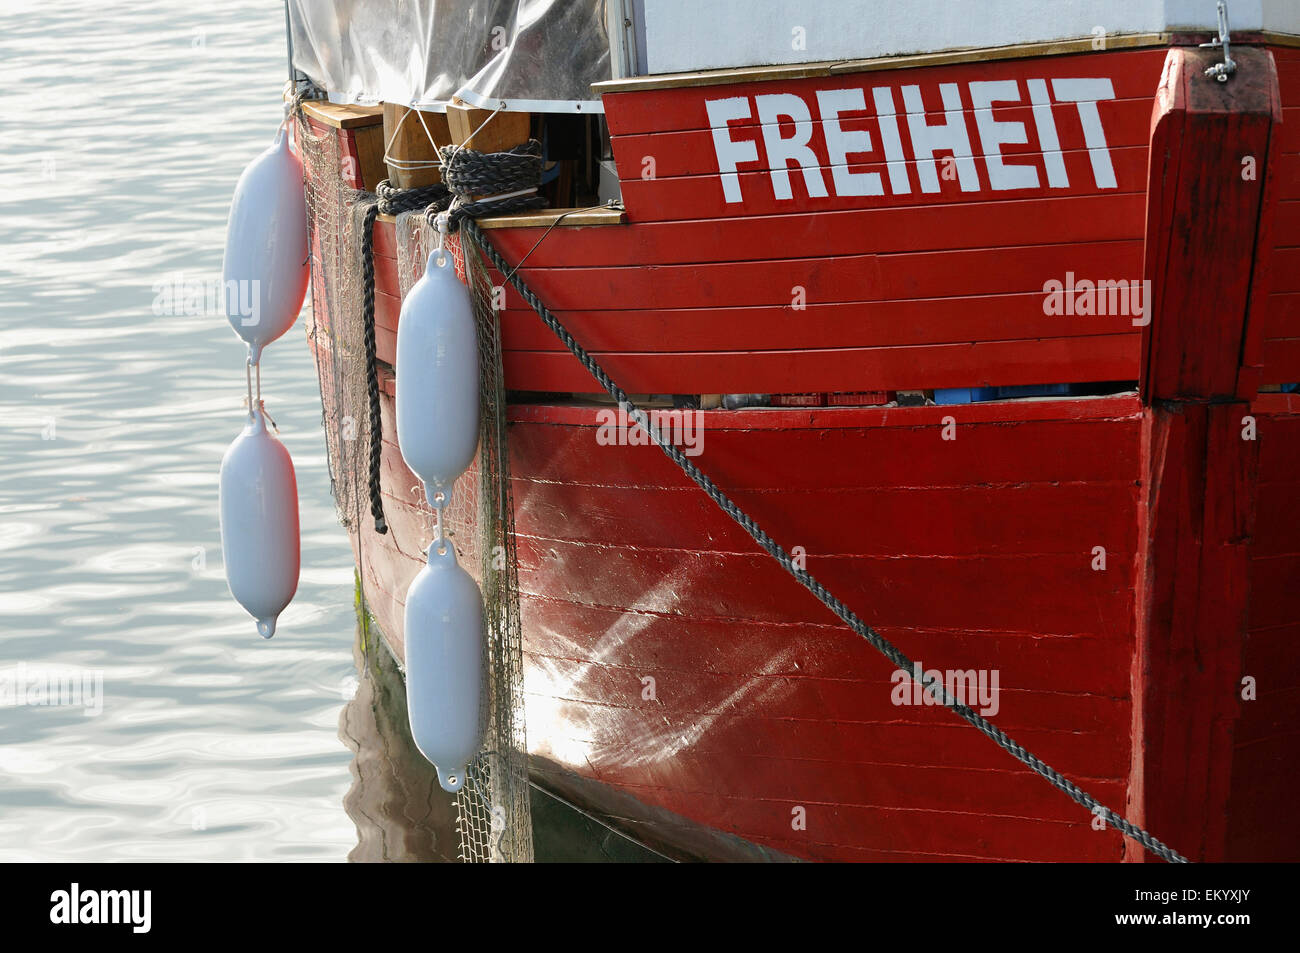 Red bow of the fishing boat named 'Freiheit', Mecklenburg-Western Pomerania, Germany - Stock Image